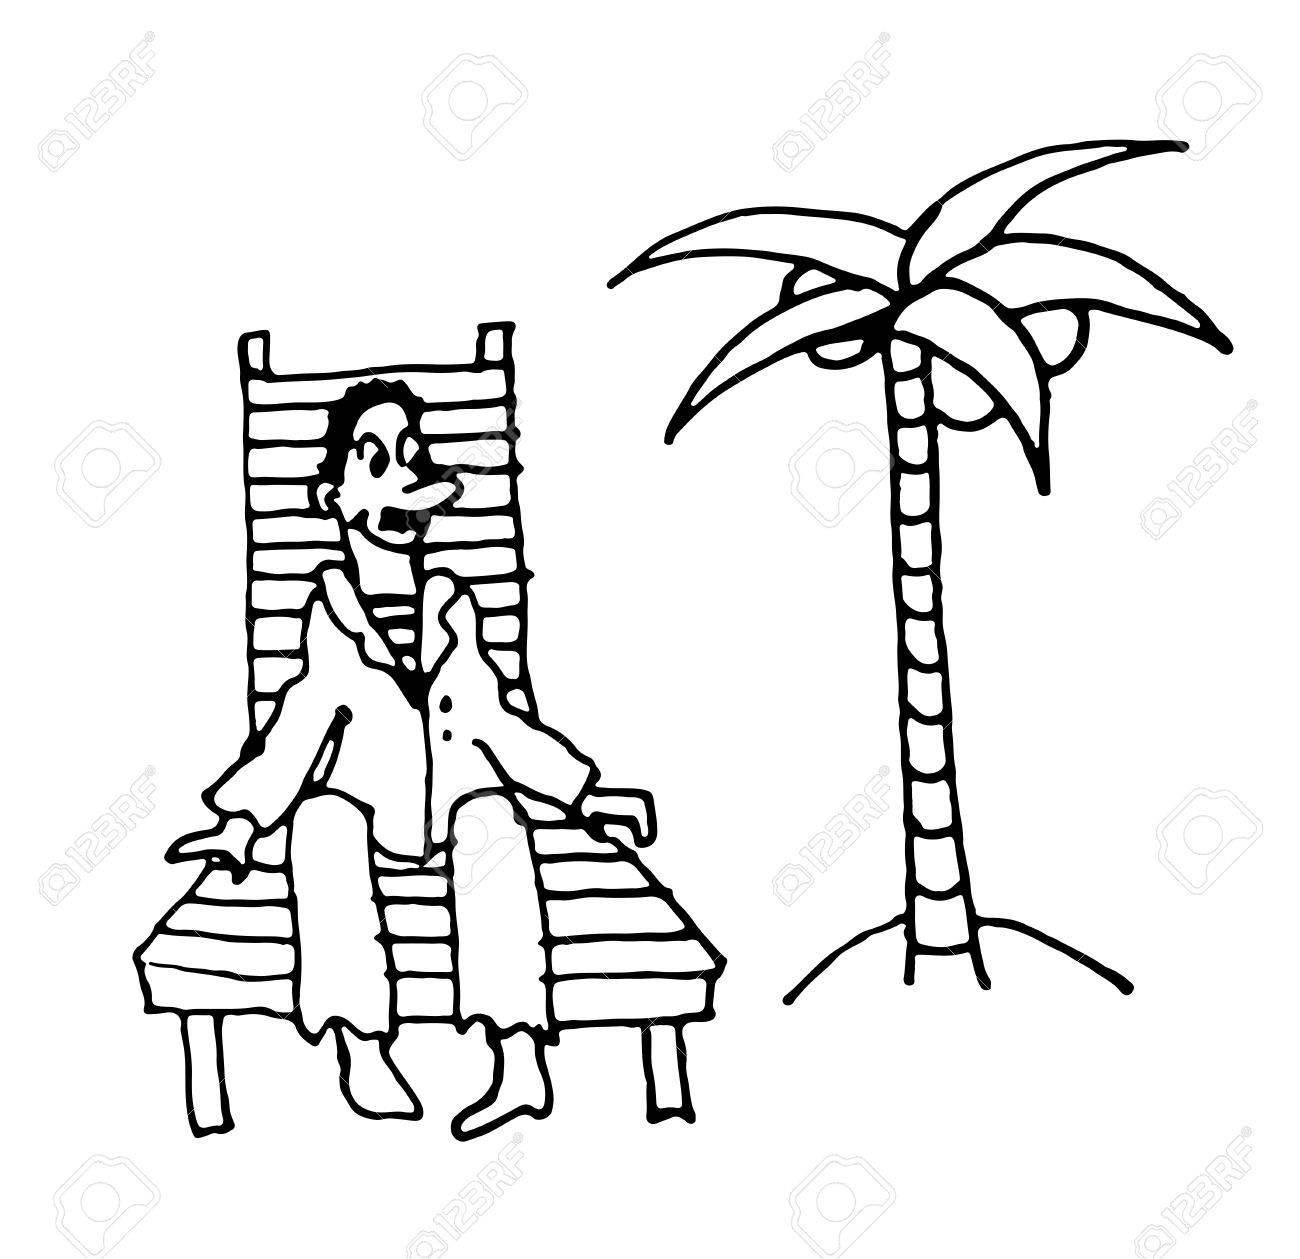 1300x1259 Sailor Man In A Suit Rests On A Wooden Deck Chair Under A Palm